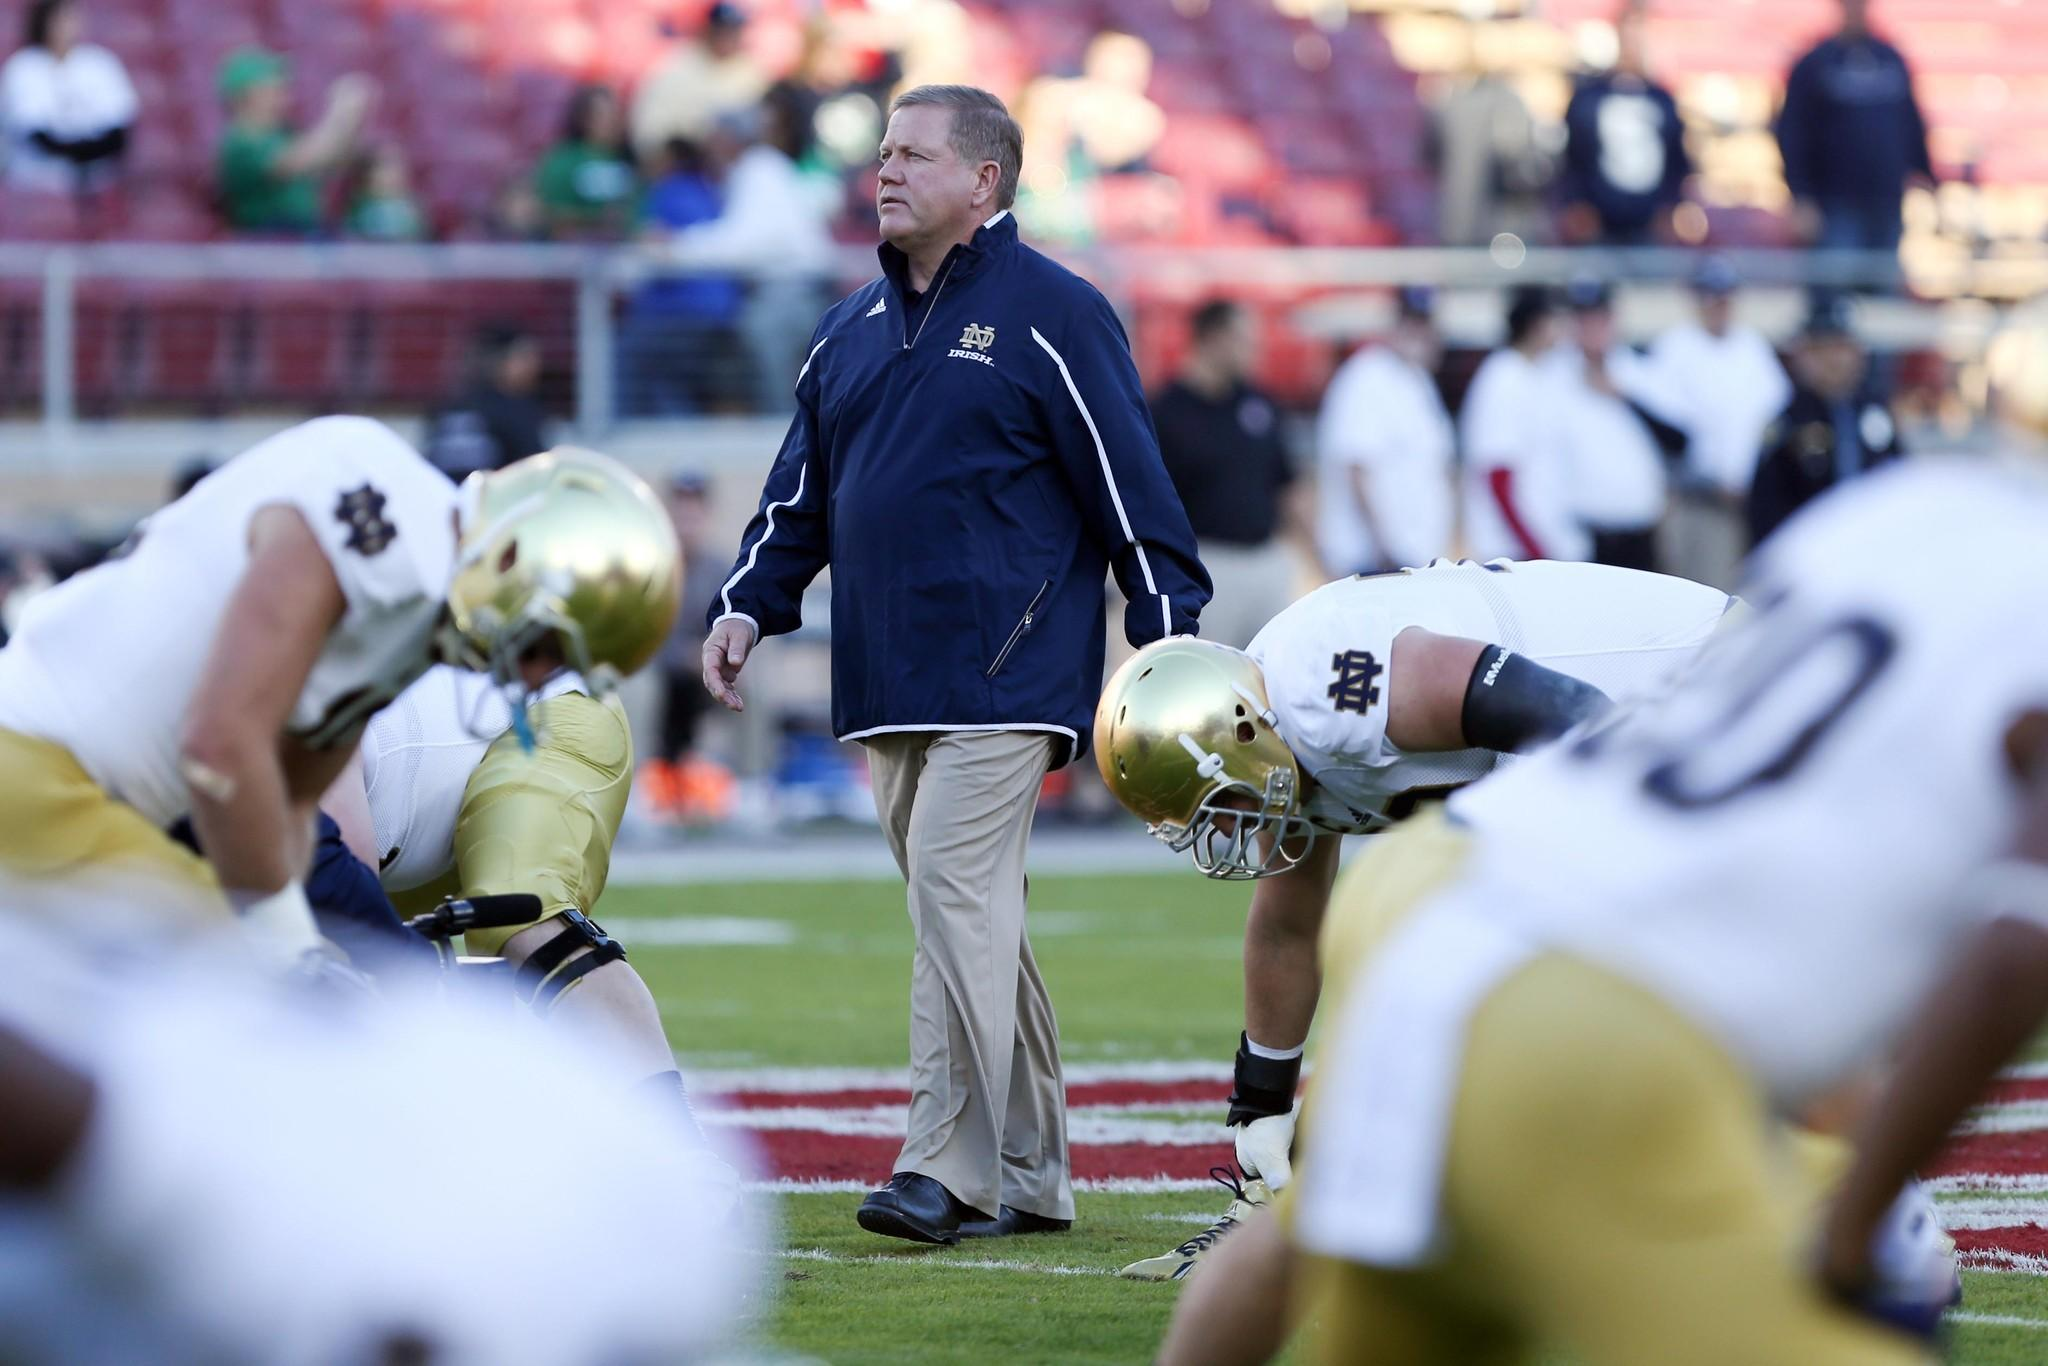 Notre Dame coach Brian Kelly walks amongst players before the game against Stanford.